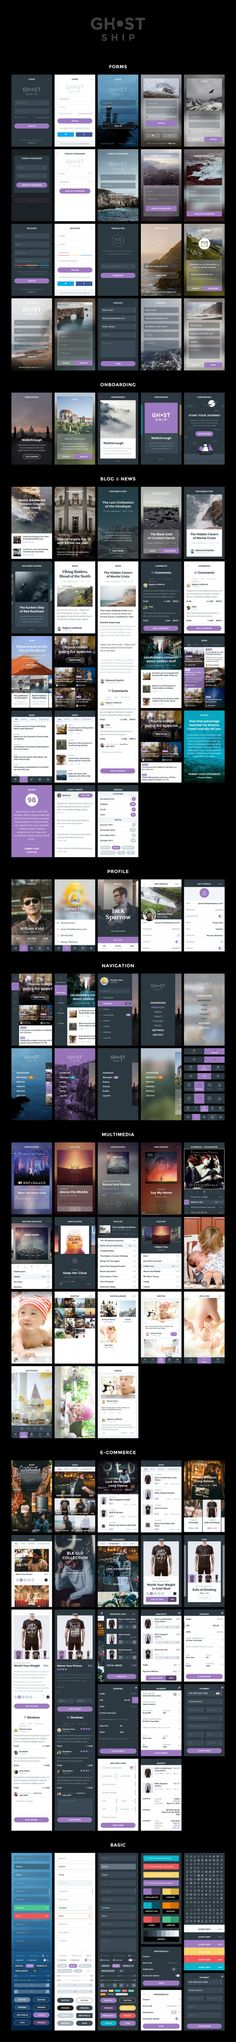 It is really interesting looking at UI kits, seeing how the same content can be laid out multiple times. Ghost Ship Mobile UI Kit Published by Maan Ali Interface Design, Ios App Design, Android Design, Mobile Web Design, Web Ui Design, User Interface, Flat Design, Design Design, App Design Inspiration